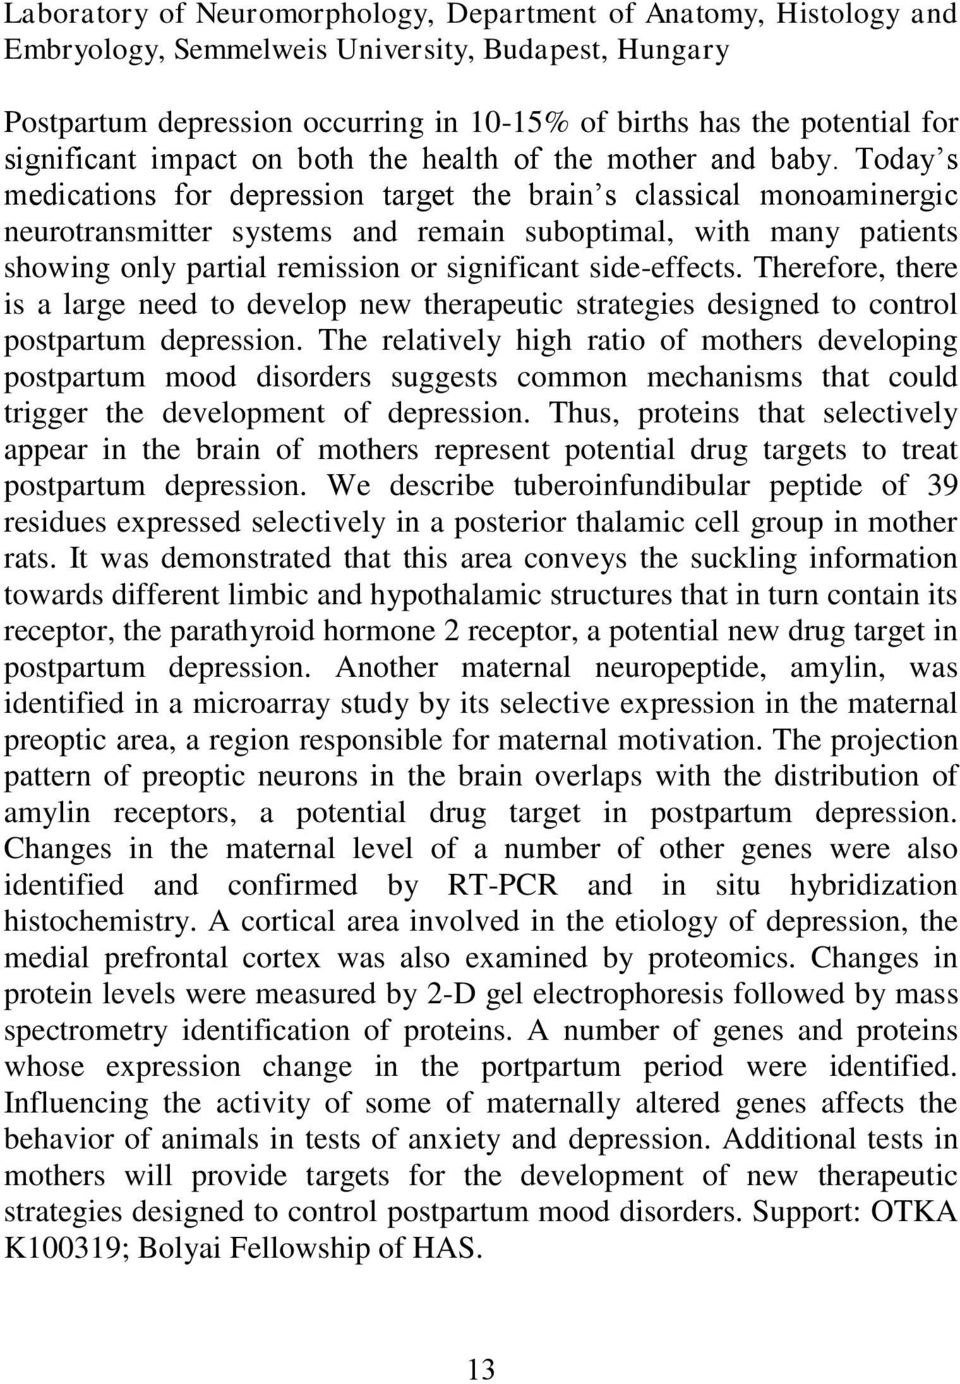 Today s medications for depression target the brain s classical monoaminergic neurotransmitter systems and remain suboptimal, with many patients showing only partial remission or significant